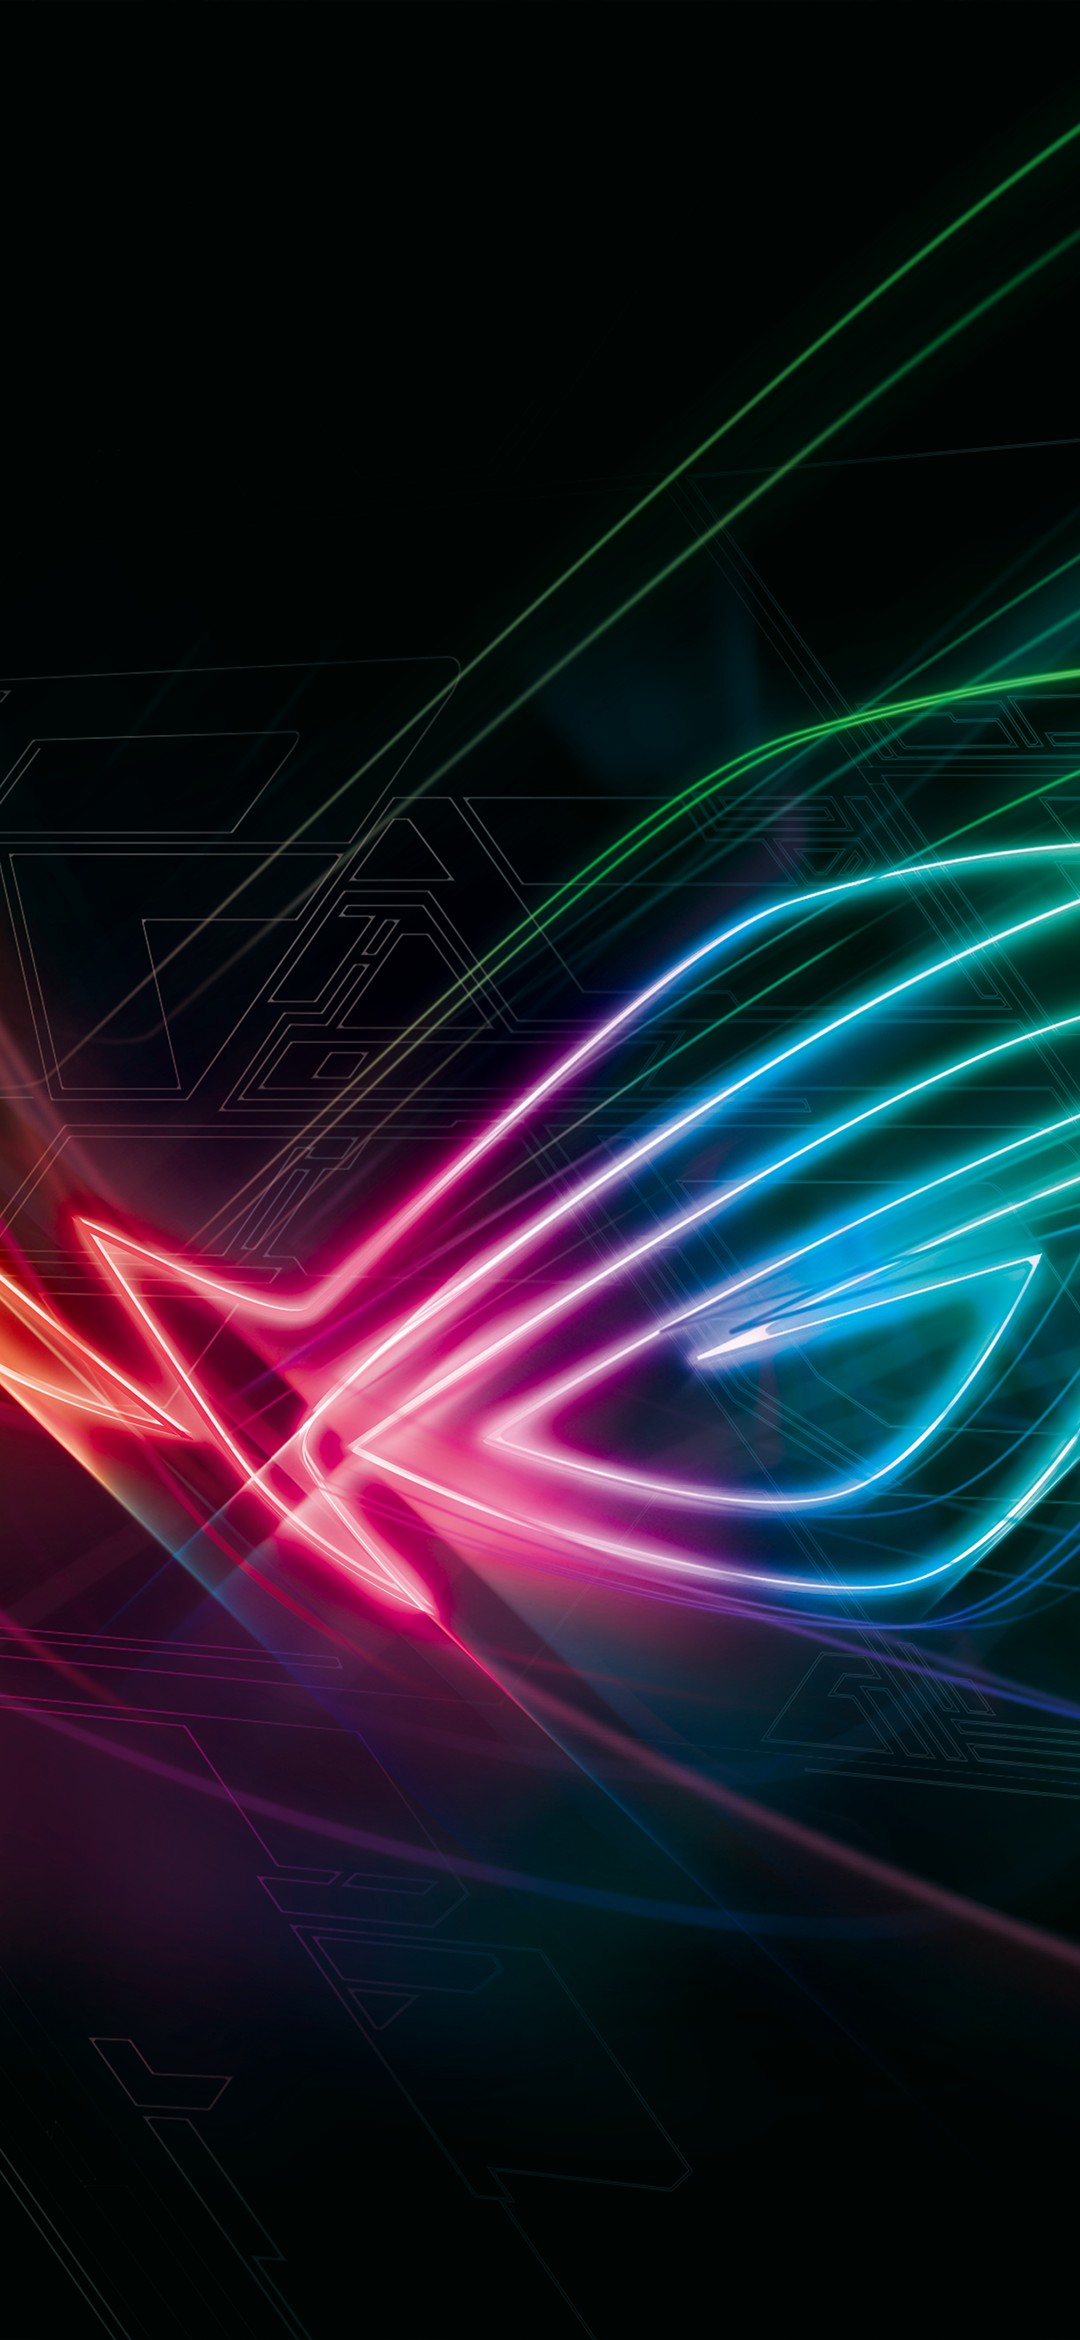 Asus Rog Phone 2 Wallpaper Ytechb Exclusive Android Wallpaper Iphone Homescreen Wallpaper Stock Wallpaper